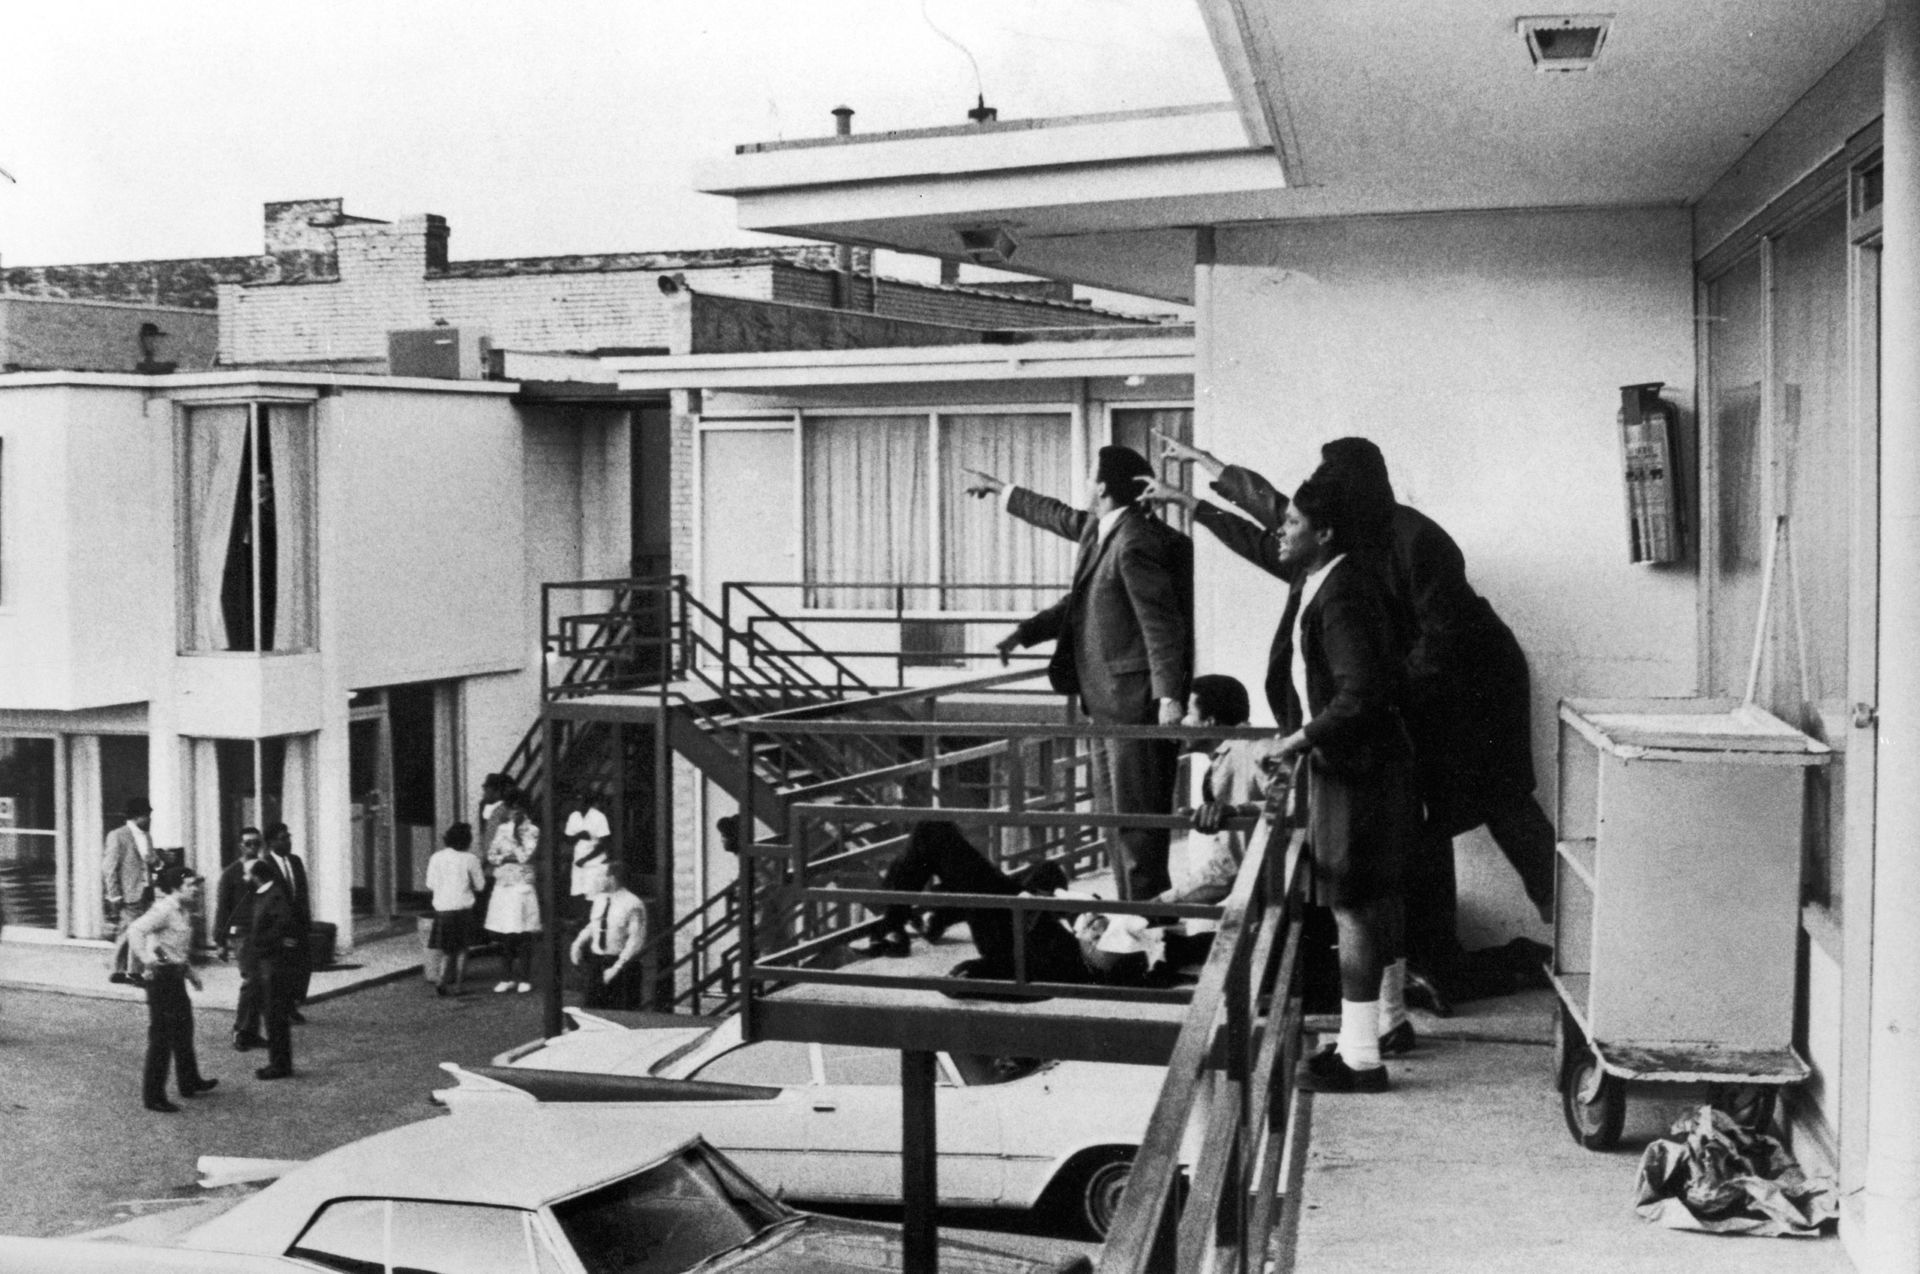 Civil rights leader Andrew Young (L) and others on balcony of Lorraine motel pointing in direction of assailant after assassination of Dr. Martin Luther King, Jr., who is lying mortally wounded at their feet. Joseph Louw—The LIFE Images Collection/Getty Images